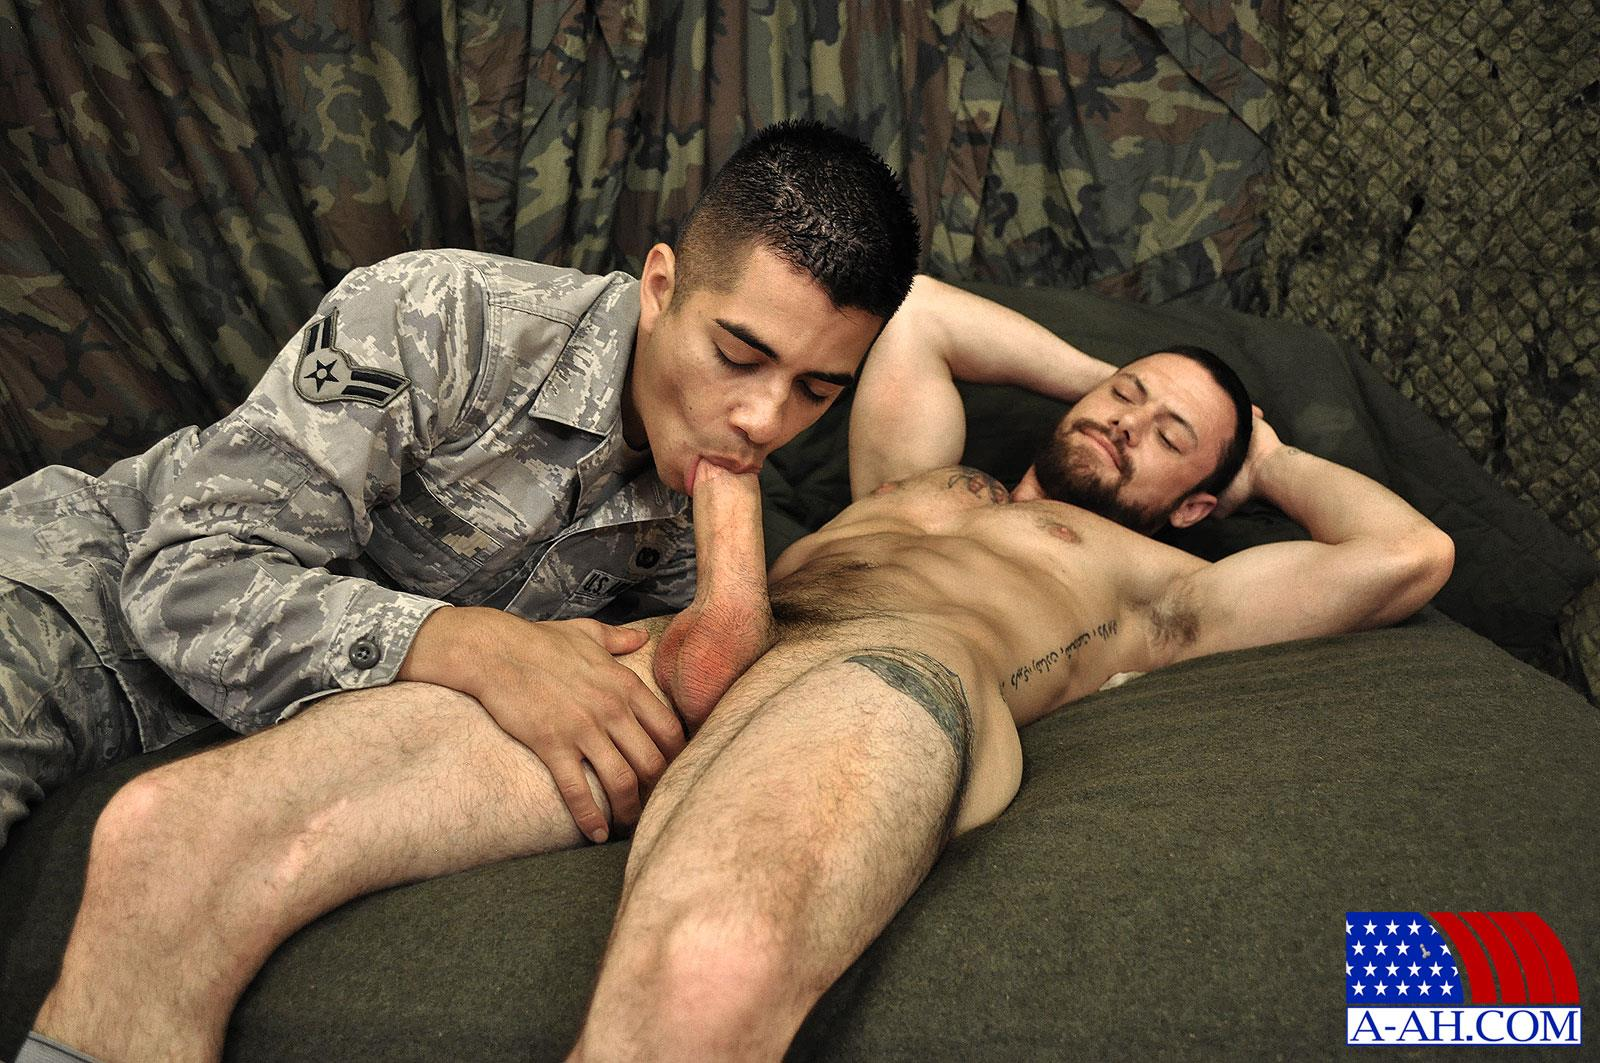 All American Heroes SERGEANT MILES AND AIRMAN FIRST CLASS PAOLO swapping blow jobs and cum Amateur Gay Porn 03 Army Sergeant and an Airman Trade Blow Jobs And Eat Cum